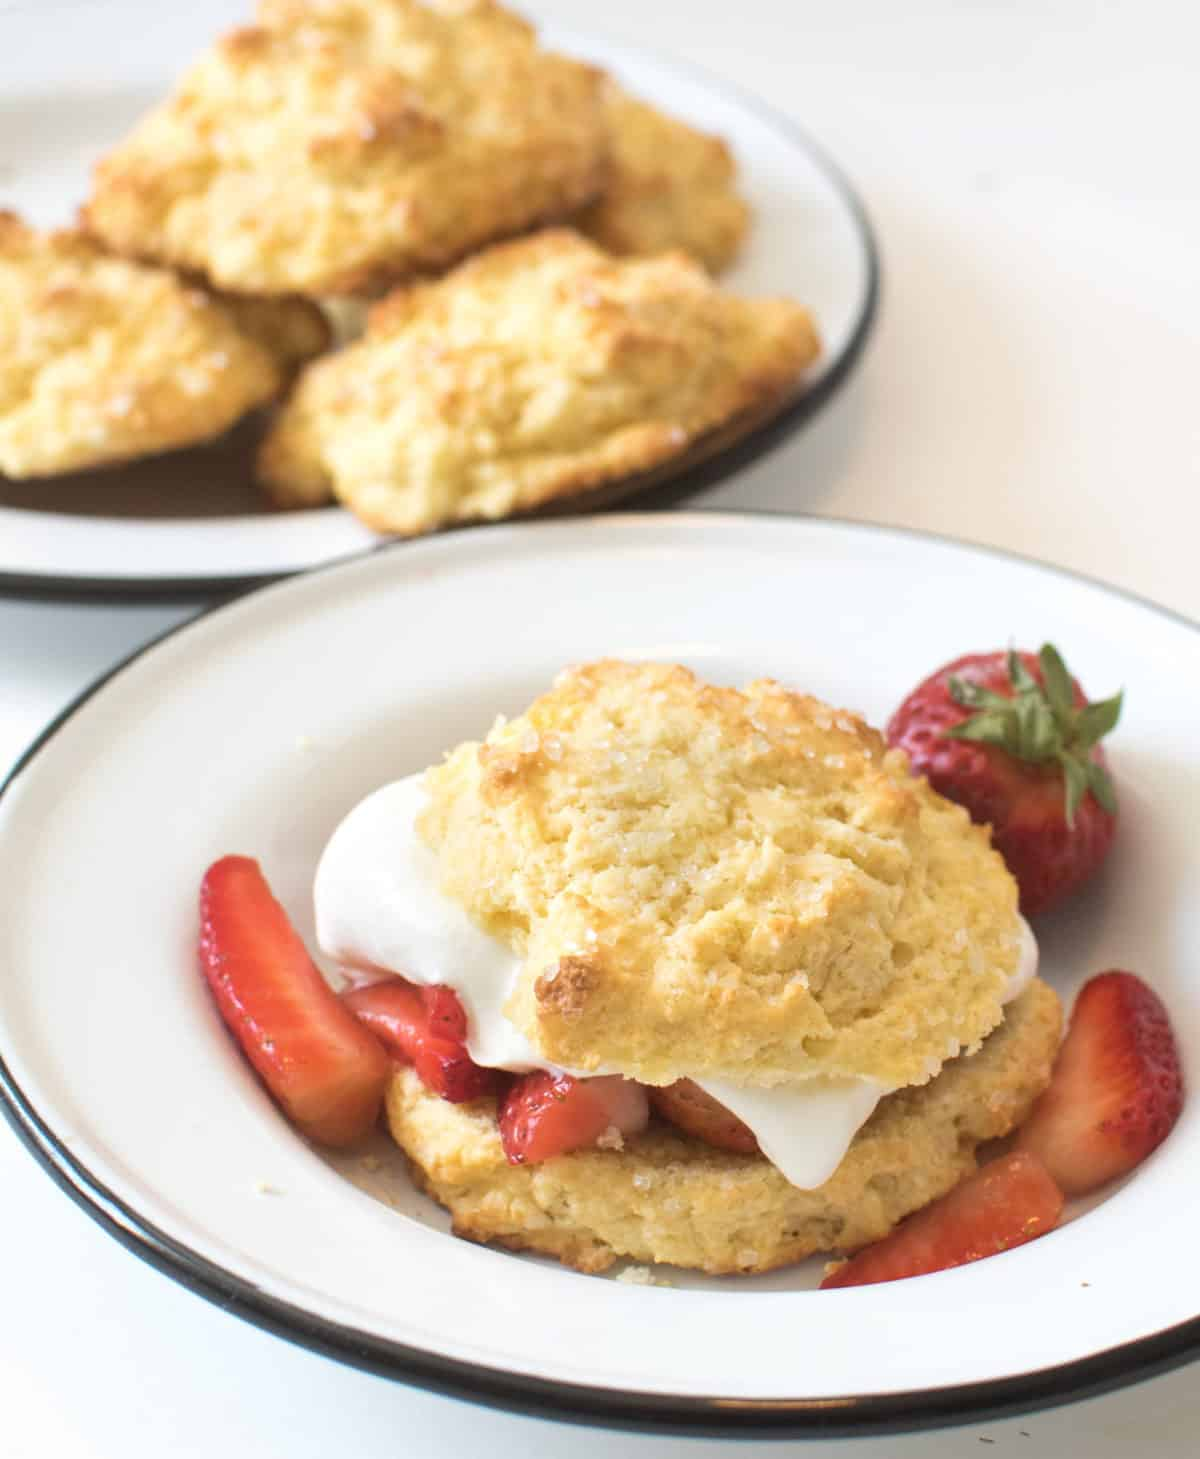 Strawberry shortcake two ways - one recipe for a sweet biscuit-like shortcake and one recipe for a cake-like strawberry shortcake, because I aim to please.